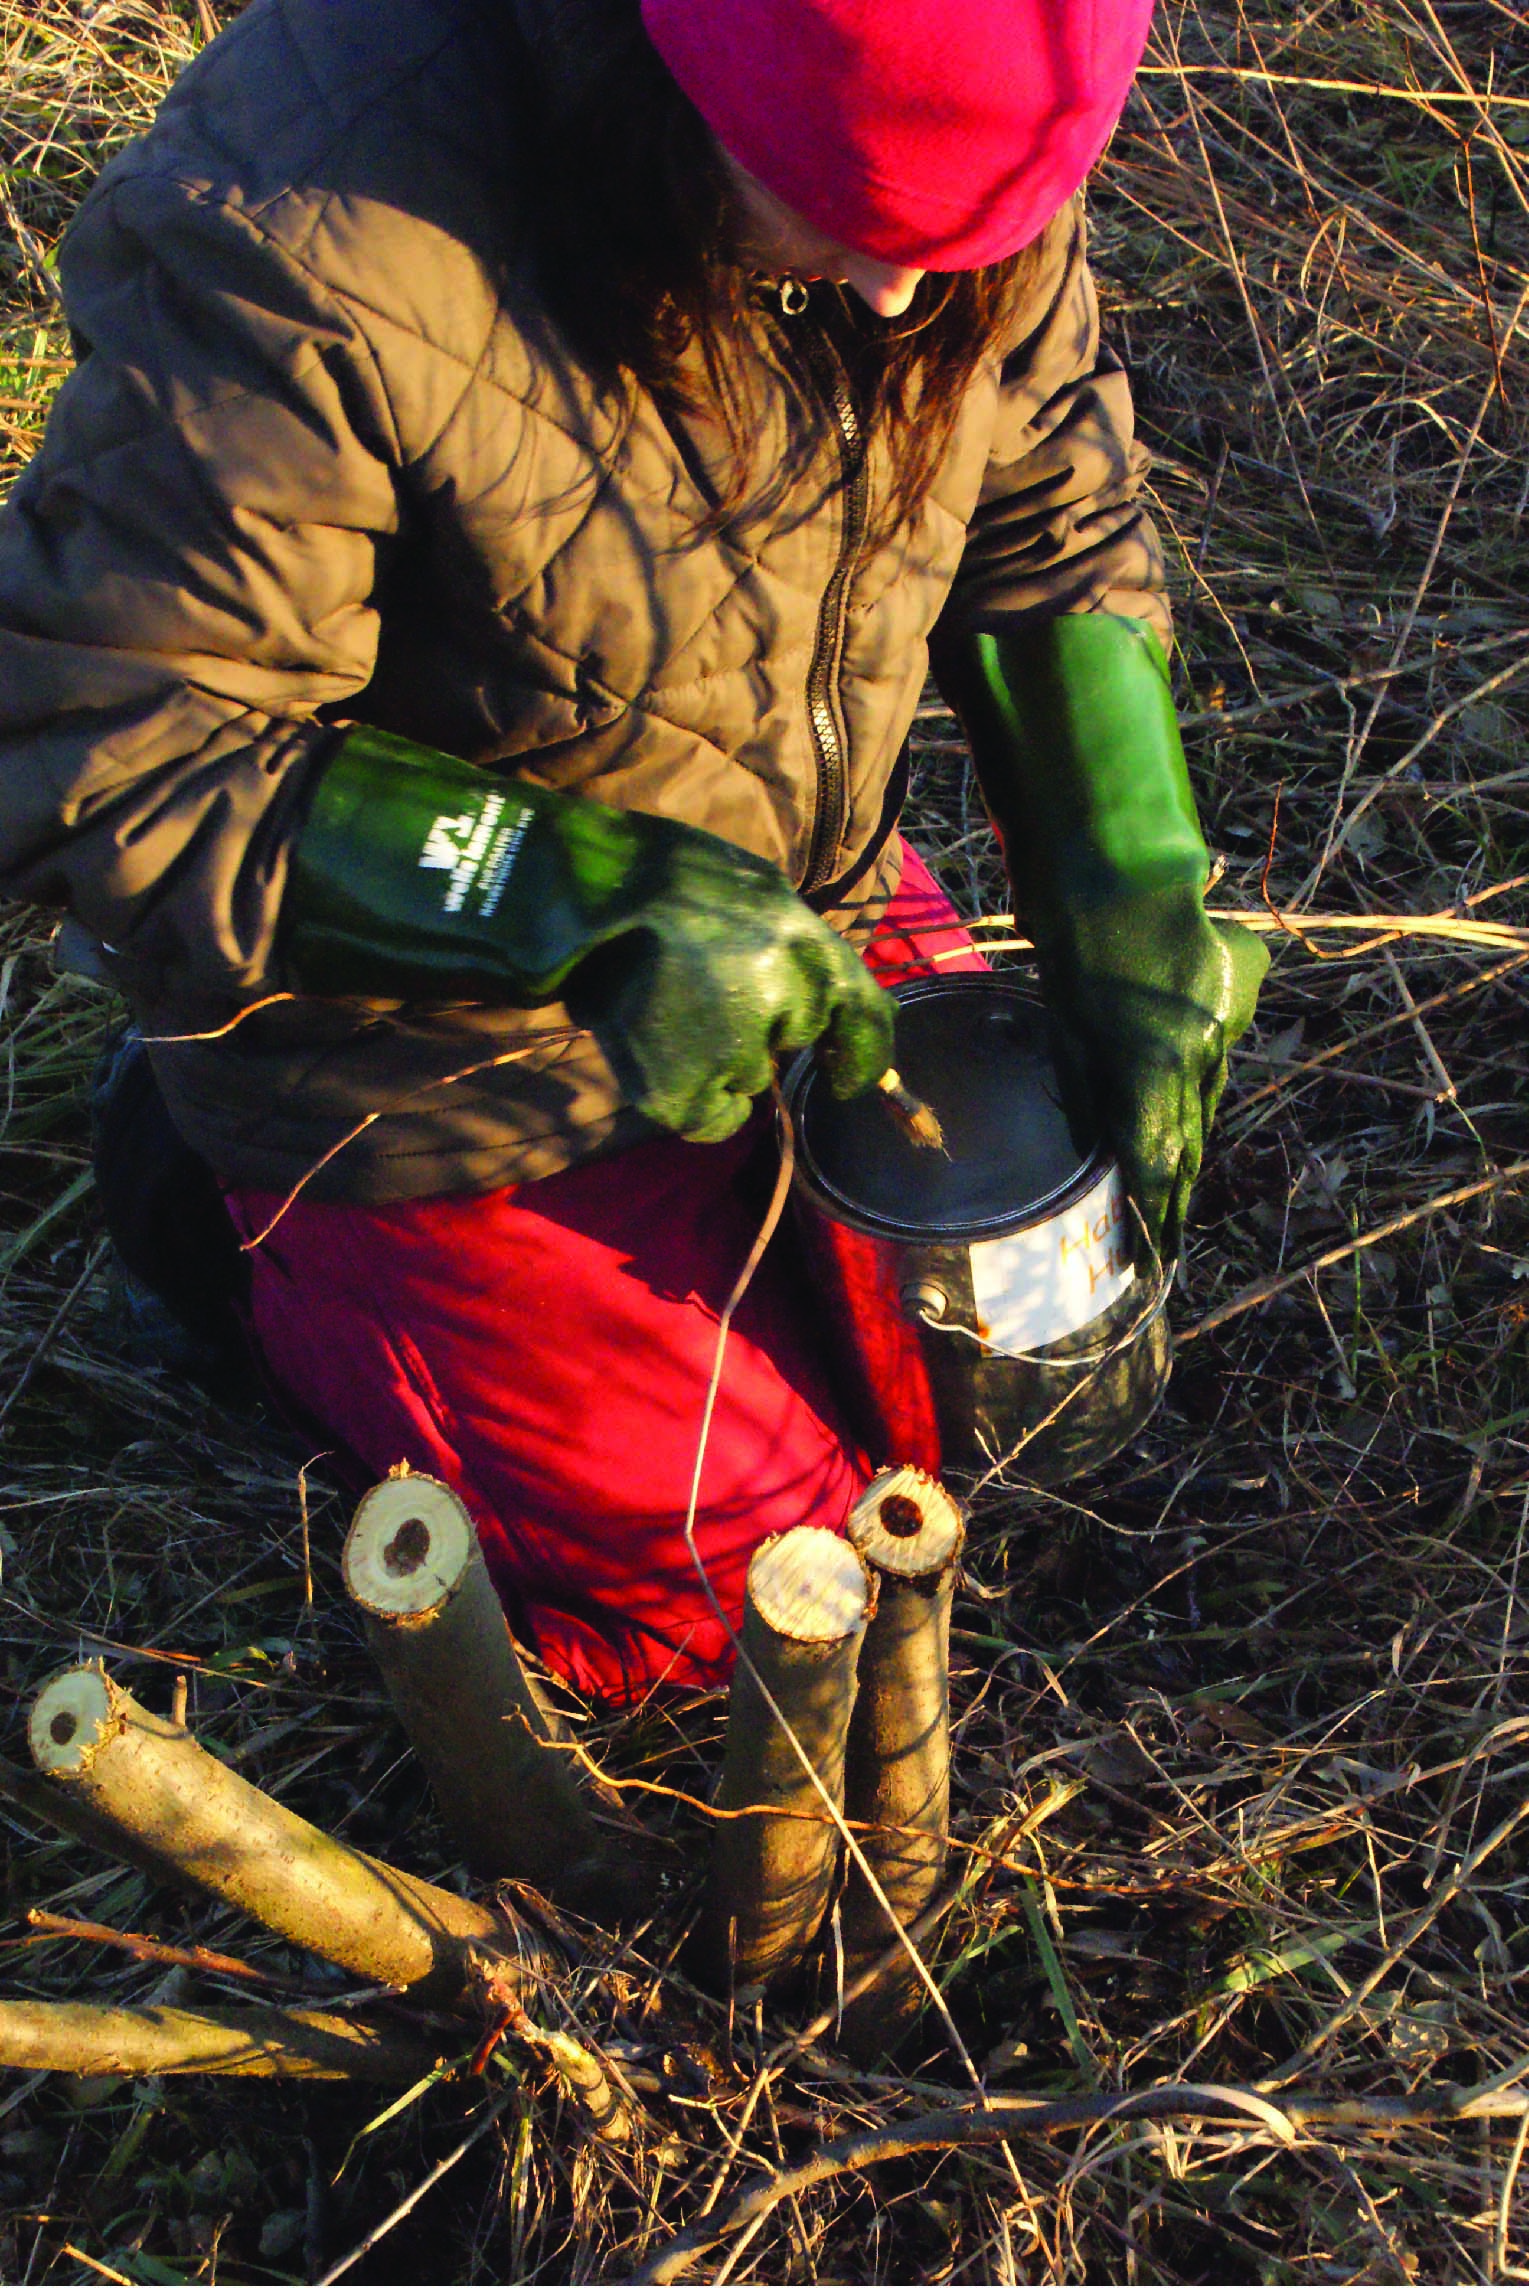 Treating an invasive Autumn Olive stump with herbicide in early spring